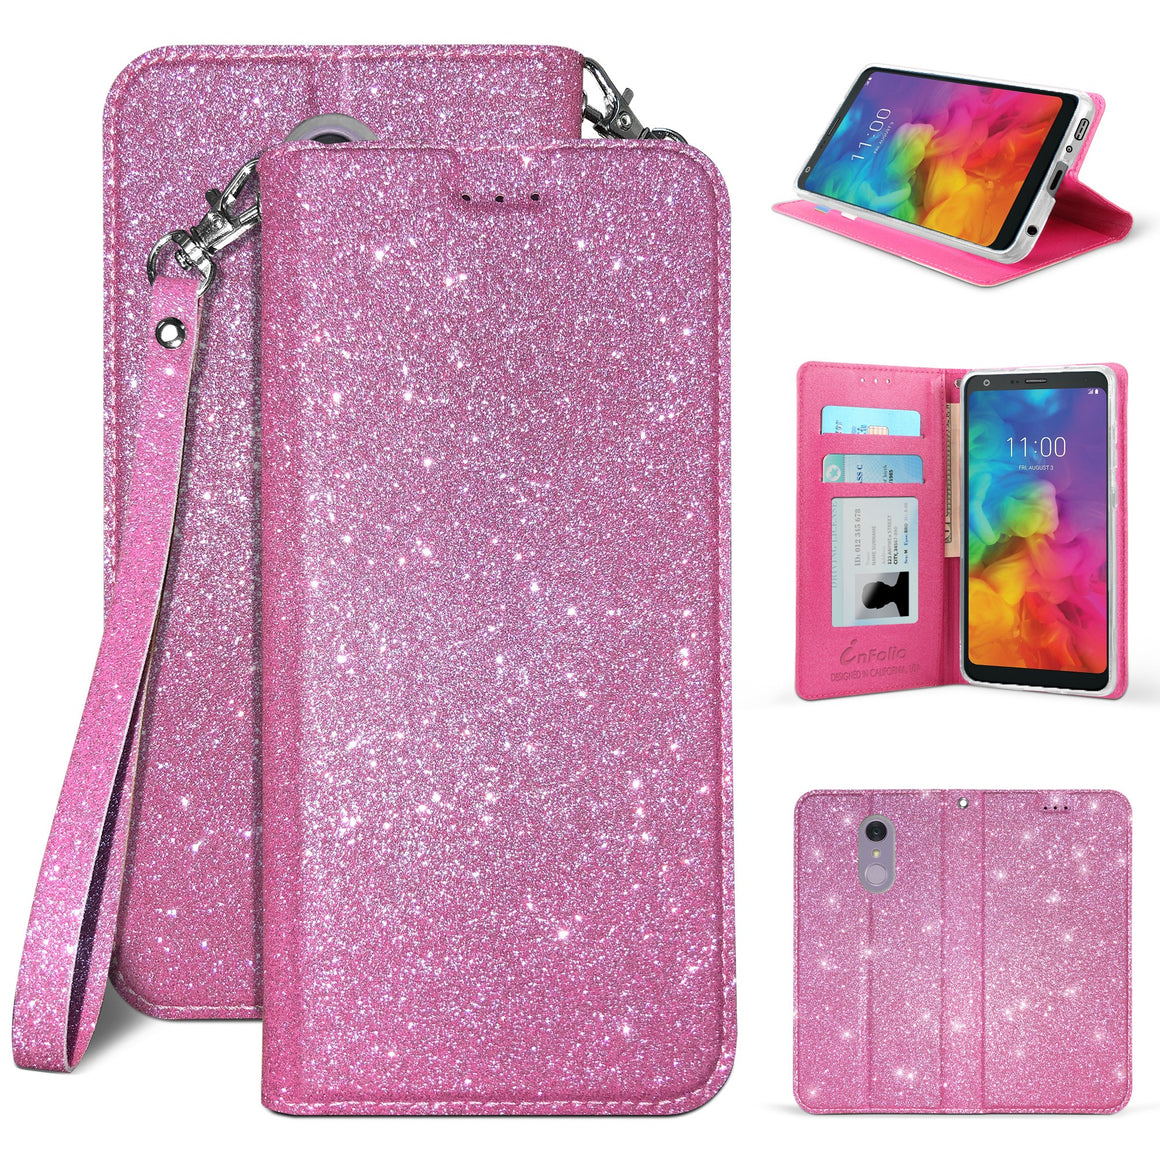 Infolio B For LG Q7/ Q7 Plus Hot Pink